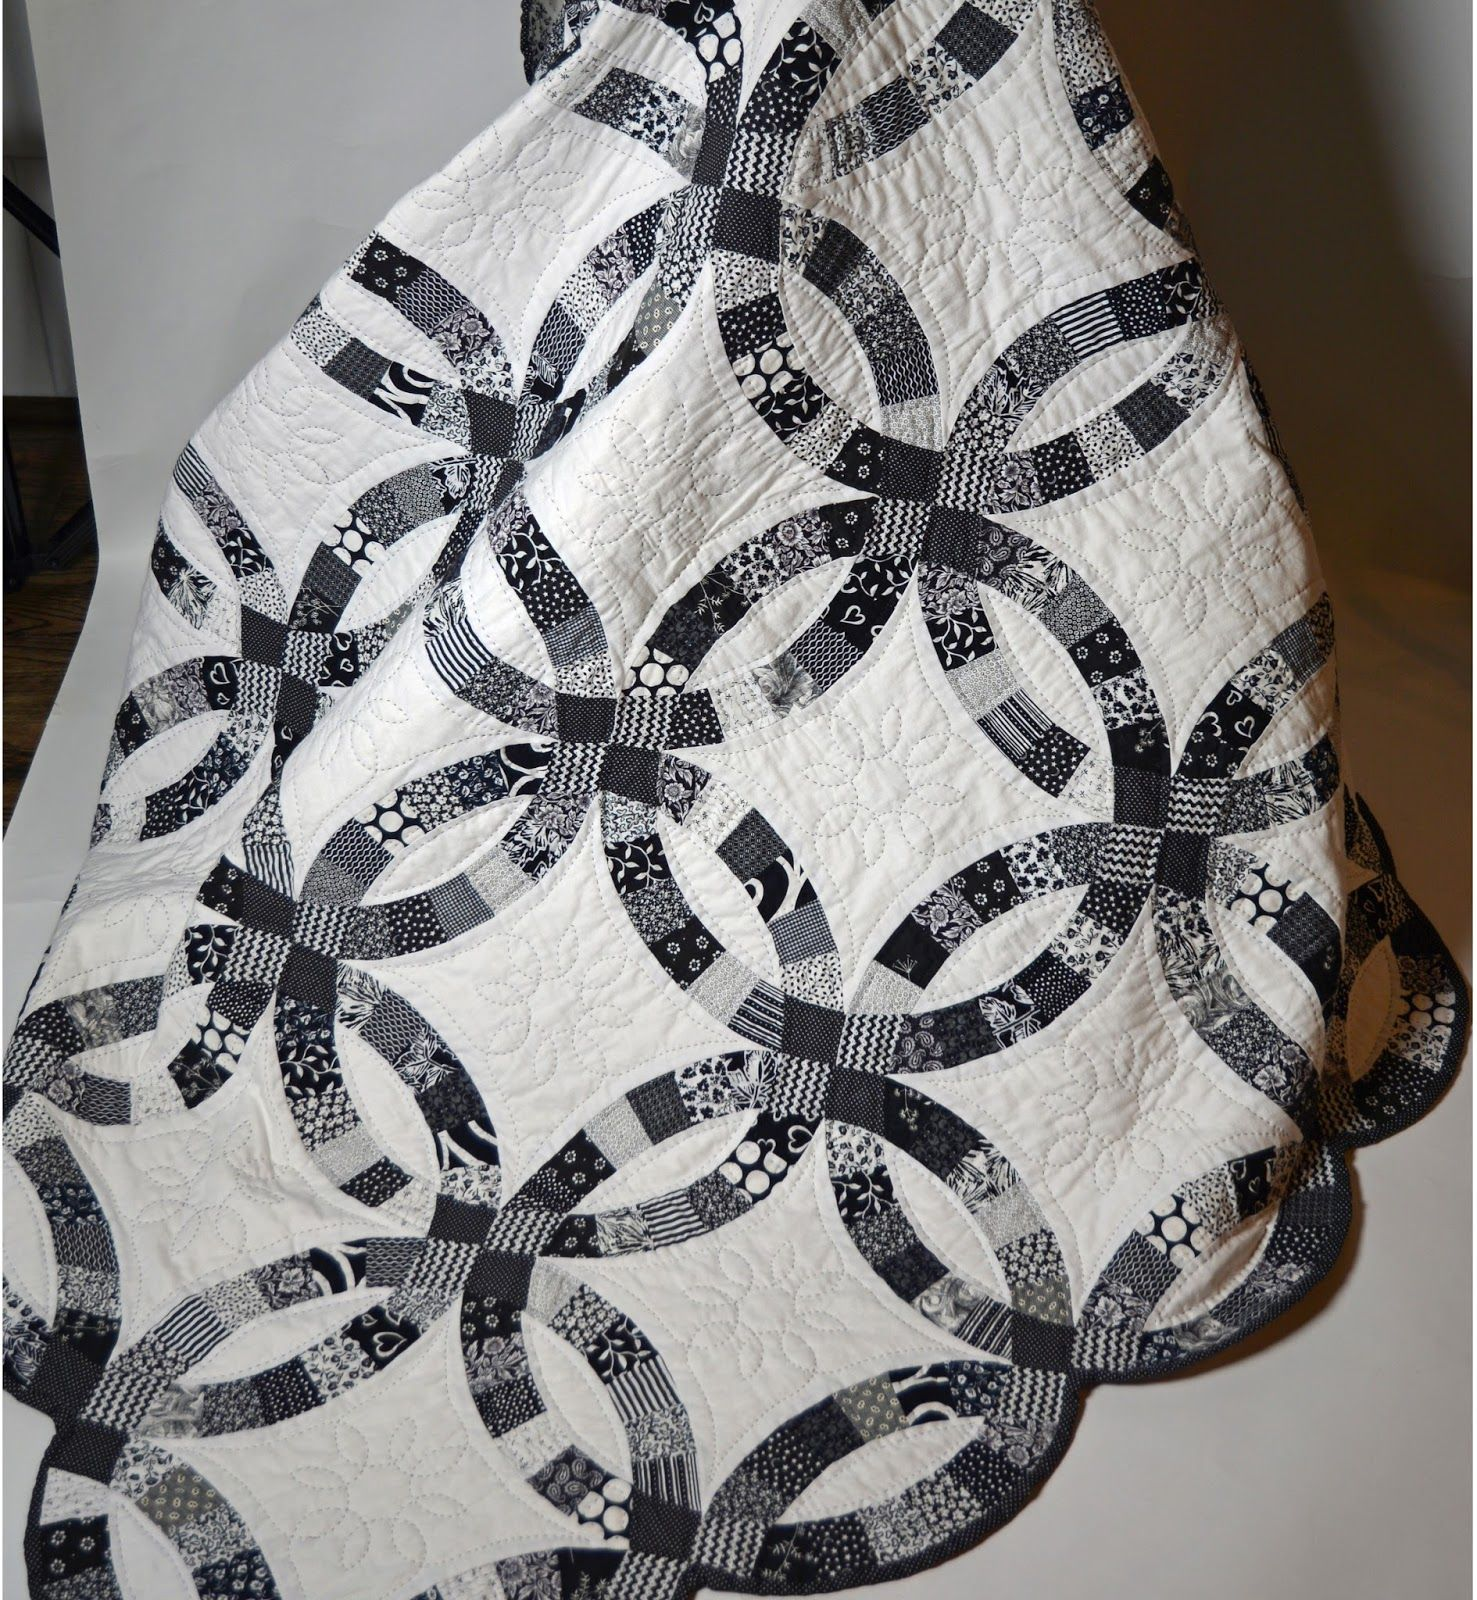 Black And White Double Wedding Ring Quilt By Teresa Duryea